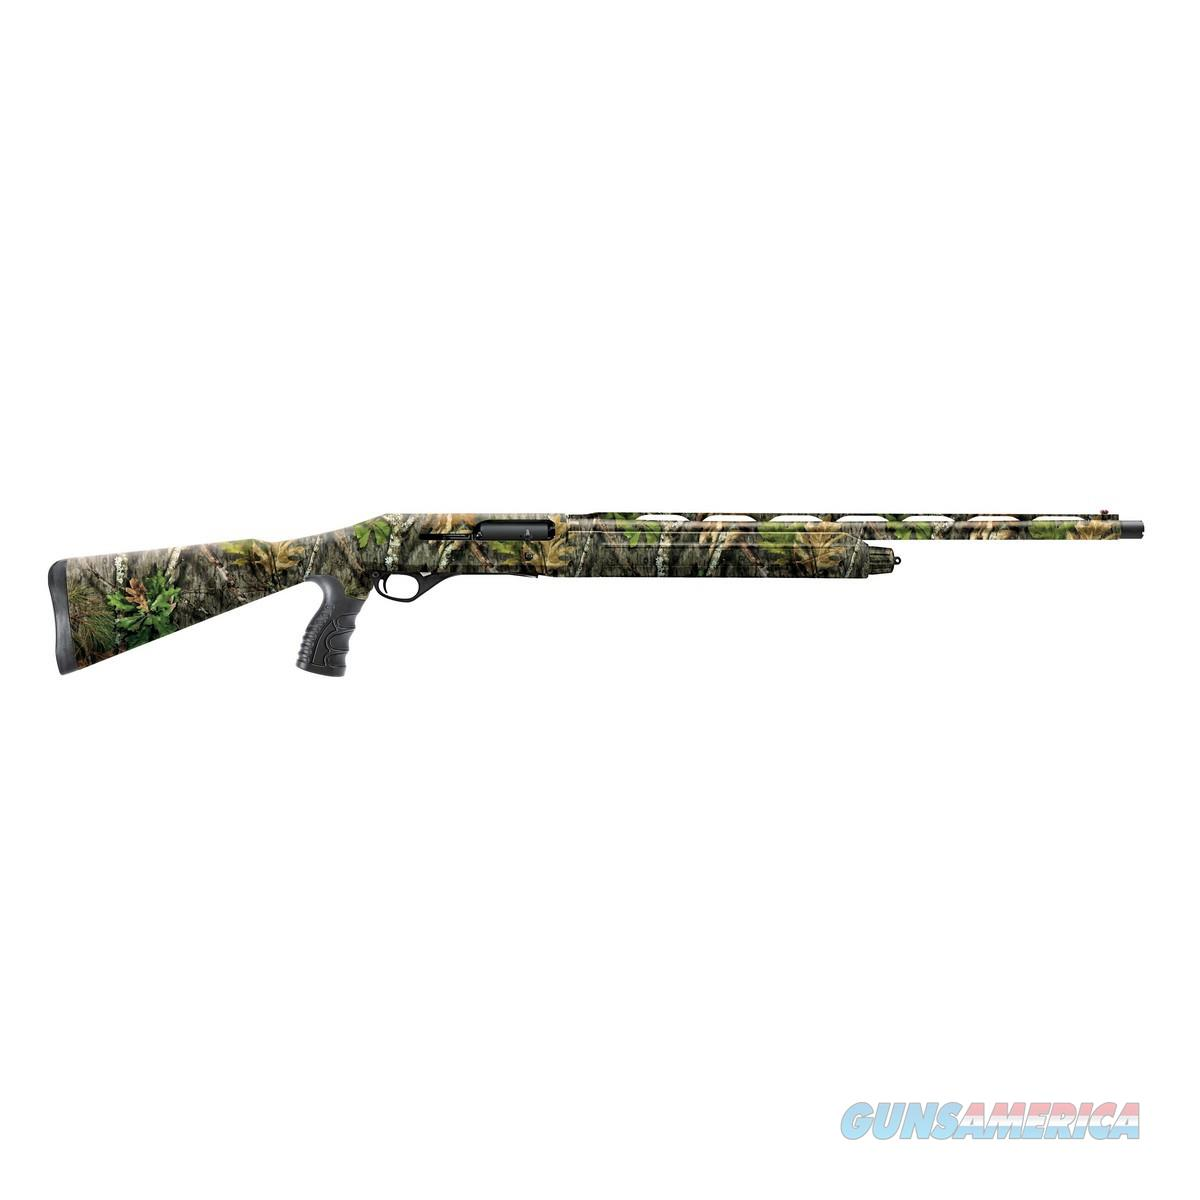 "Stoeger M3500 12 Gauge Semi-Auto 24"" Mossy Oak Obsession 31864  Guns > Shotguns > Stoeger Shotguns"